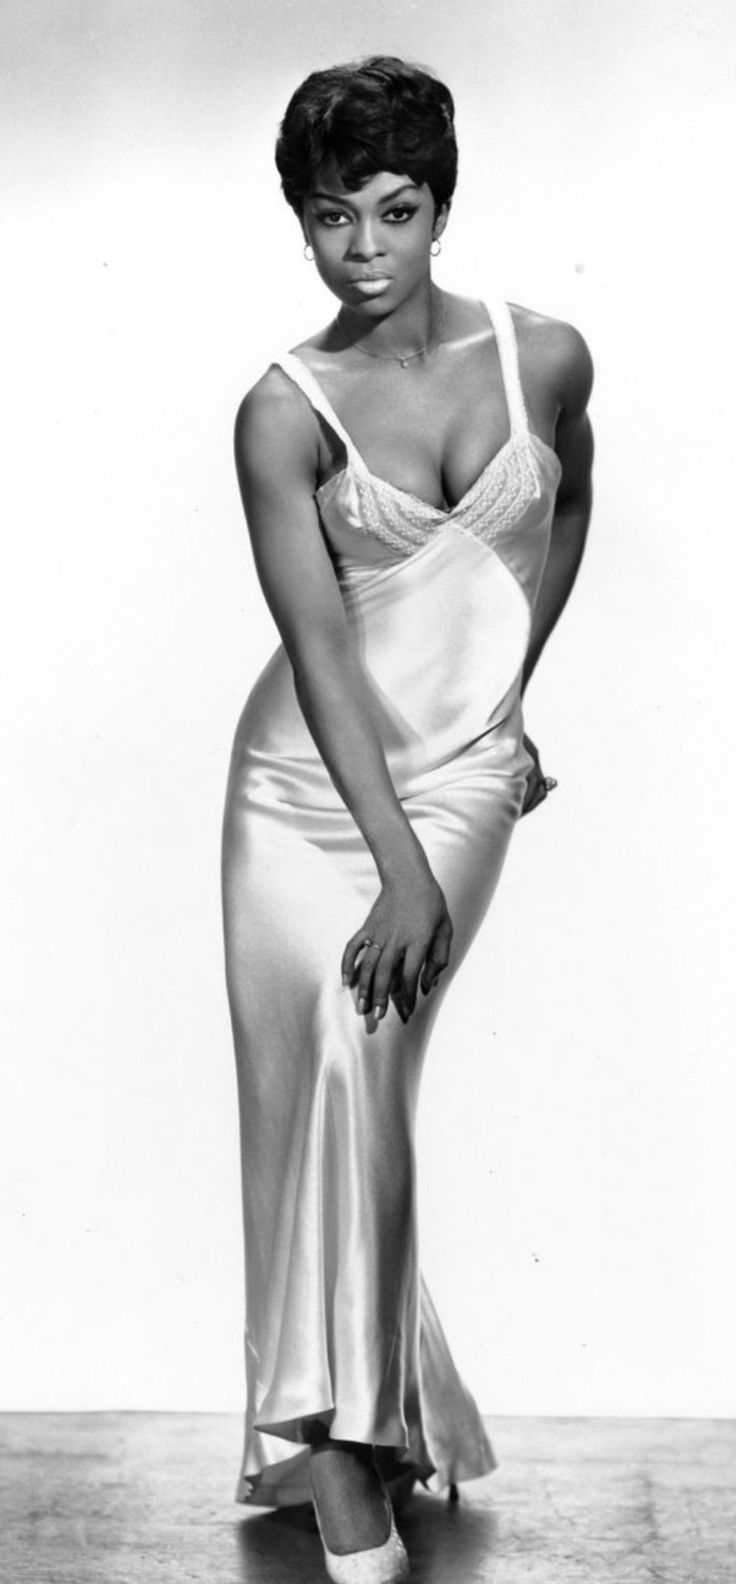 Images Of Lola Falana Complete 28 best lola falana images on pinterest | lola falana, 60 s and